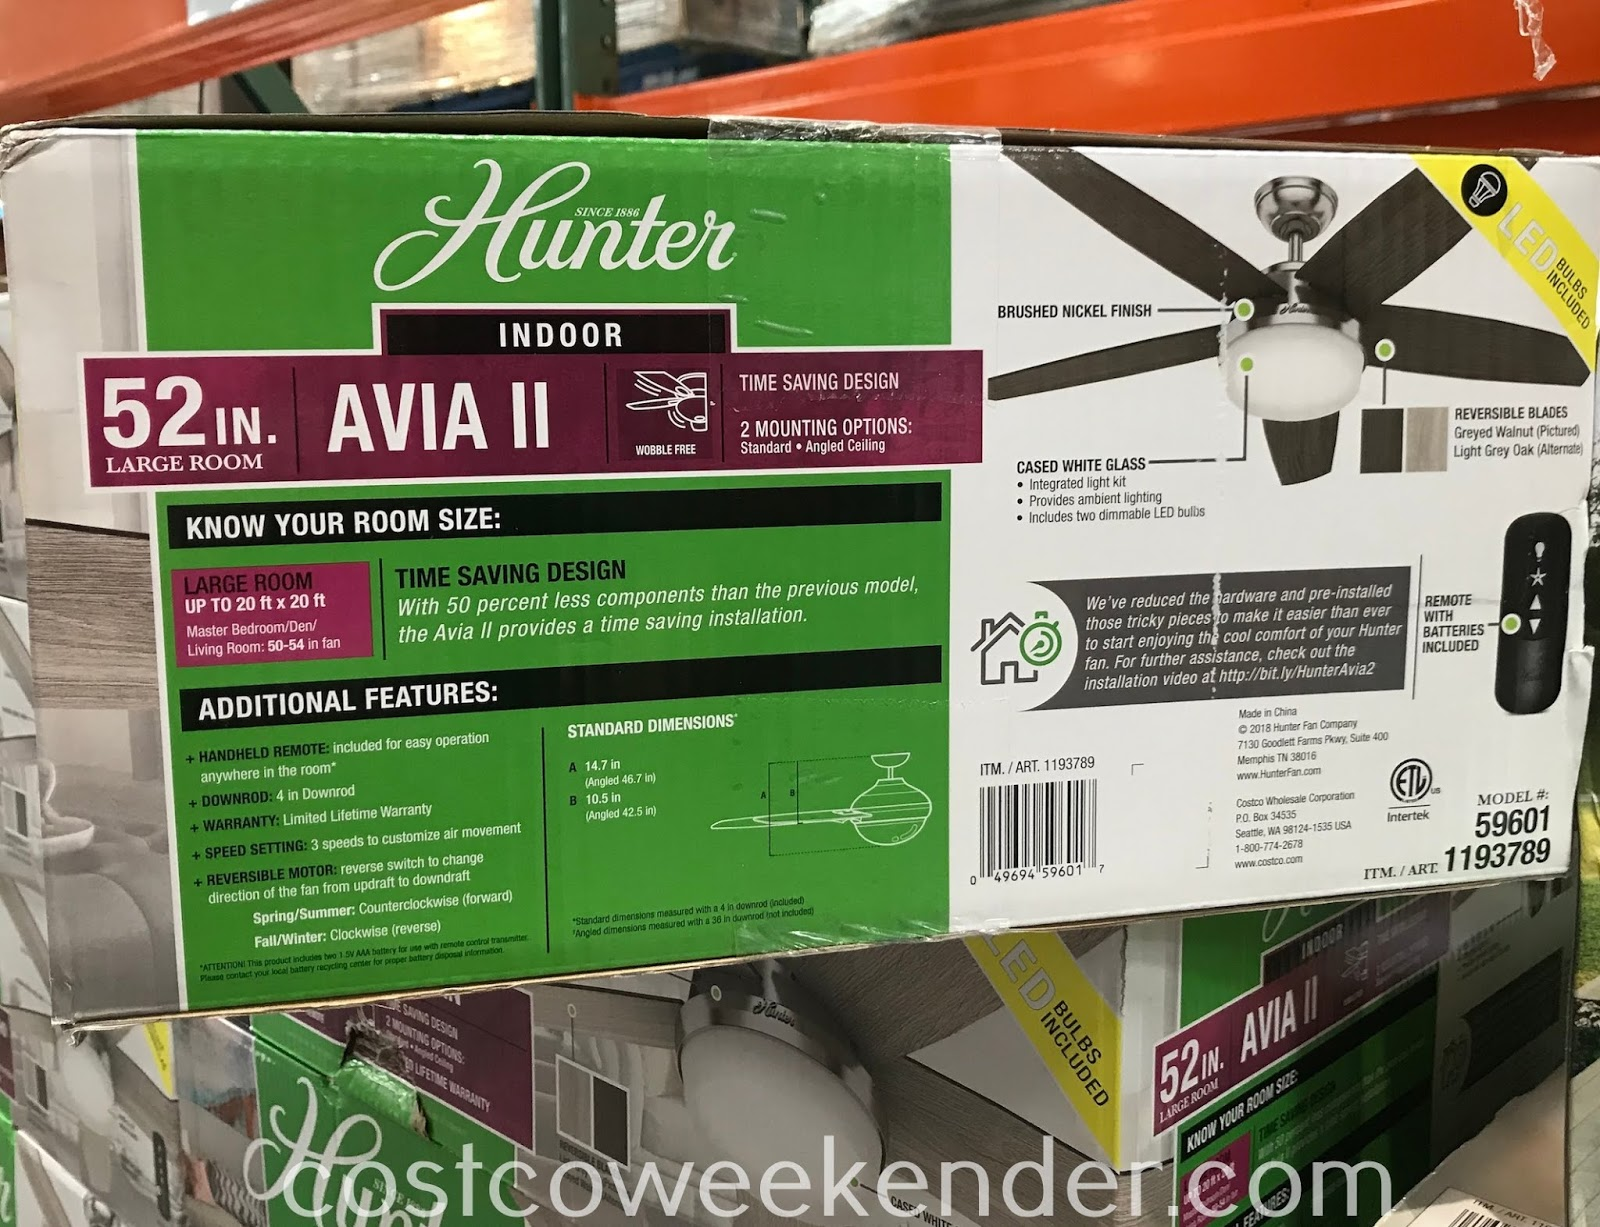 Costco 1193789 - Hunter Avia II Ceiling Fan: great for any home